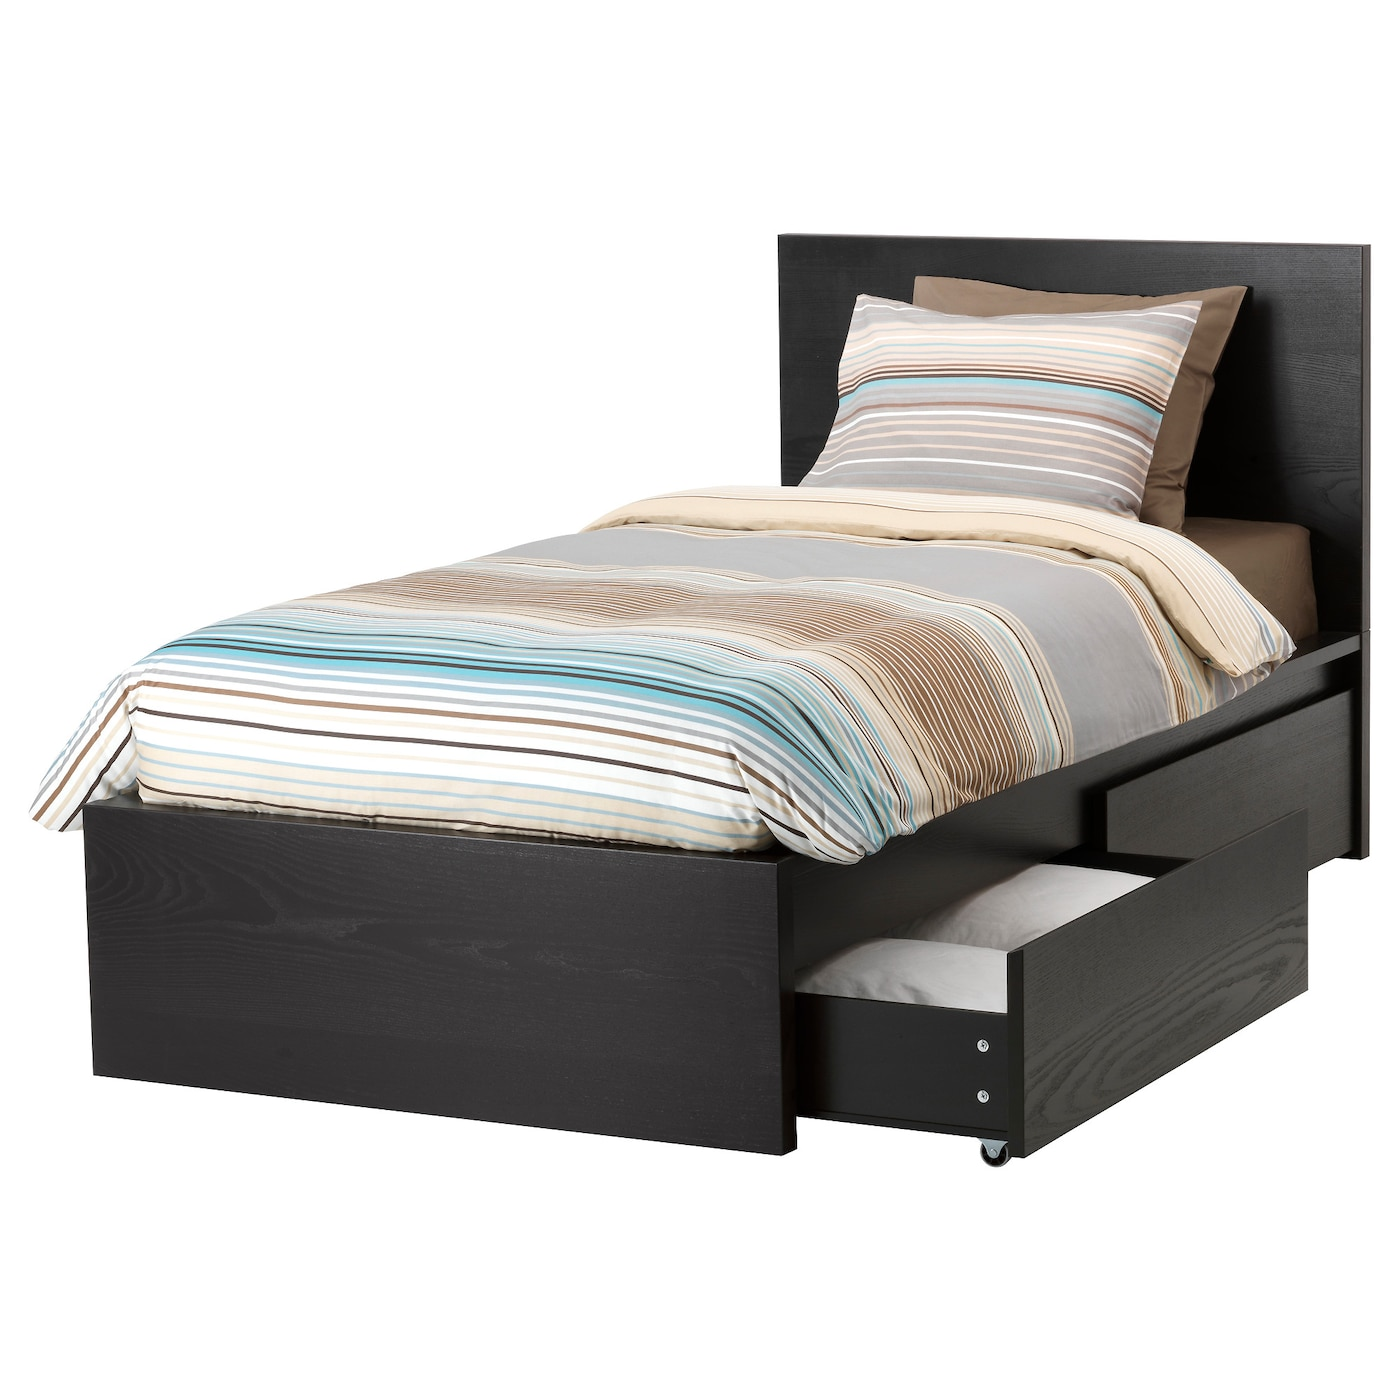 malm bed frame high w 2 storage boxes black brown lur y standard single ikea. Black Bedroom Furniture Sets. Home Design Ideas